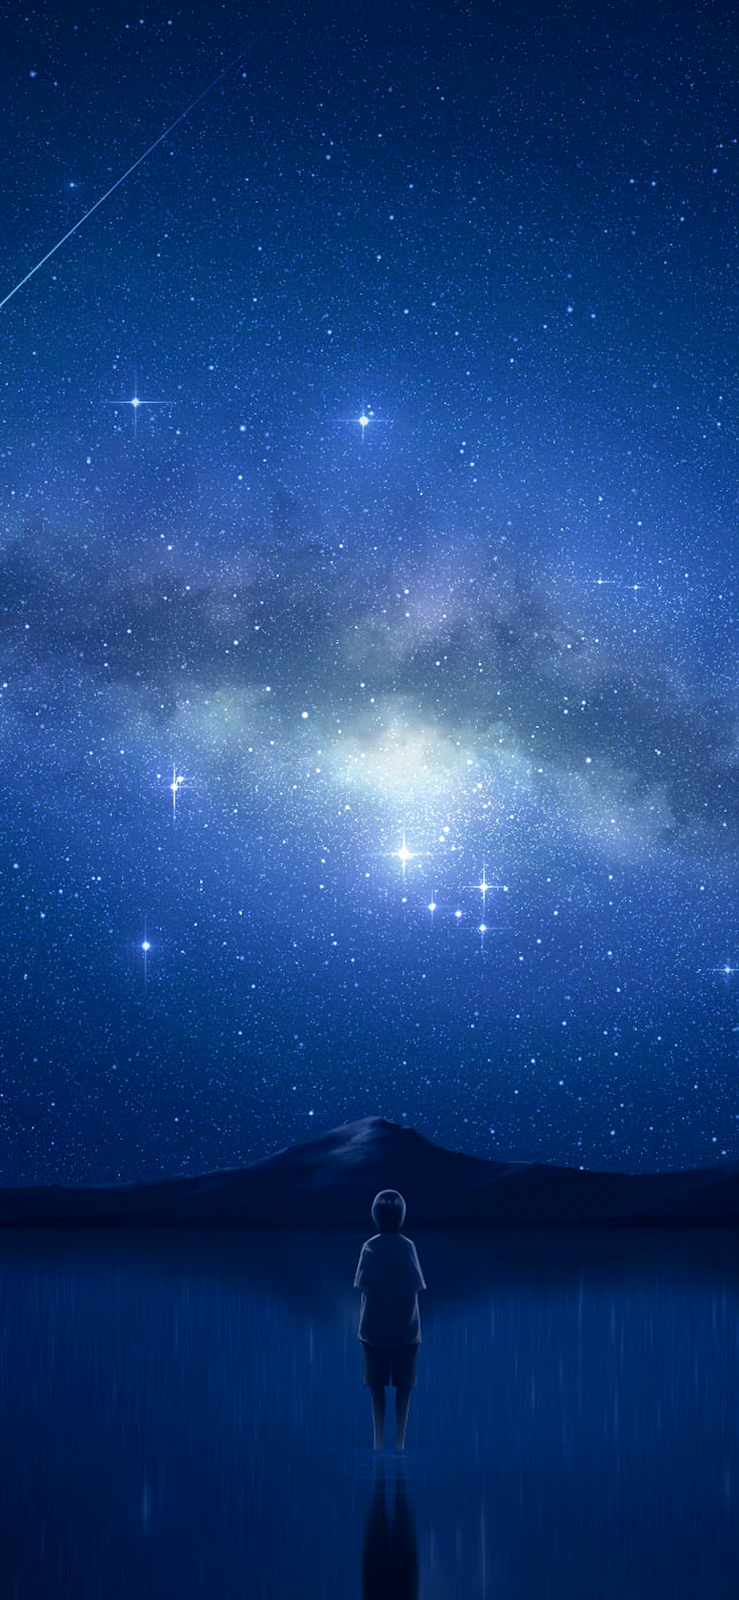 Under the starry night wallpaper for iPhone 11 Pro Max / iPhone XSMAX,